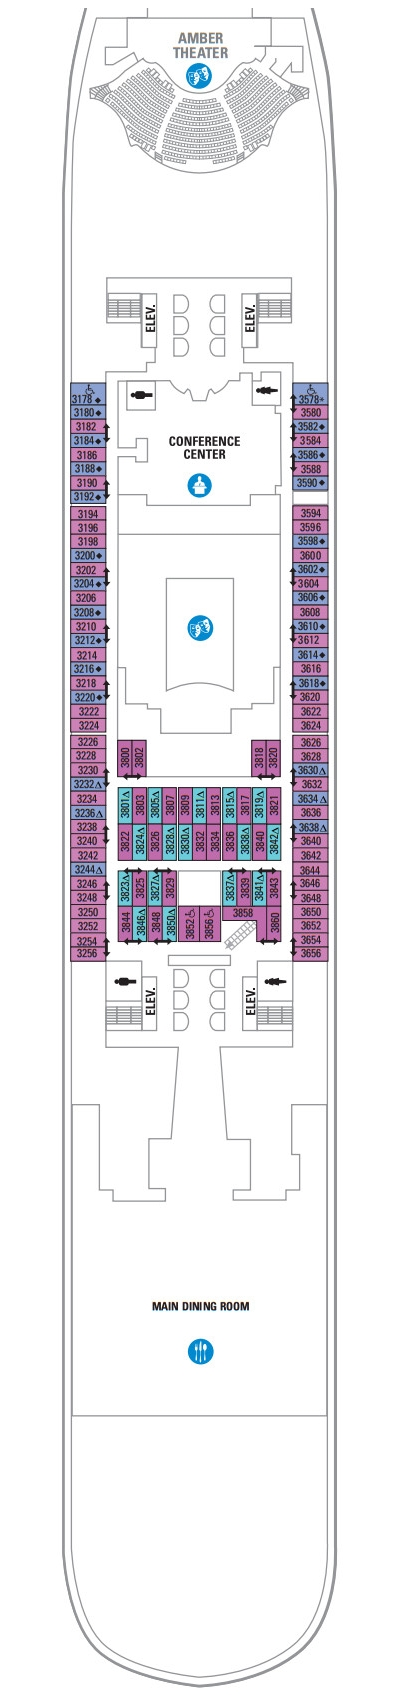 Allure Of The Seas Deck 3 layout